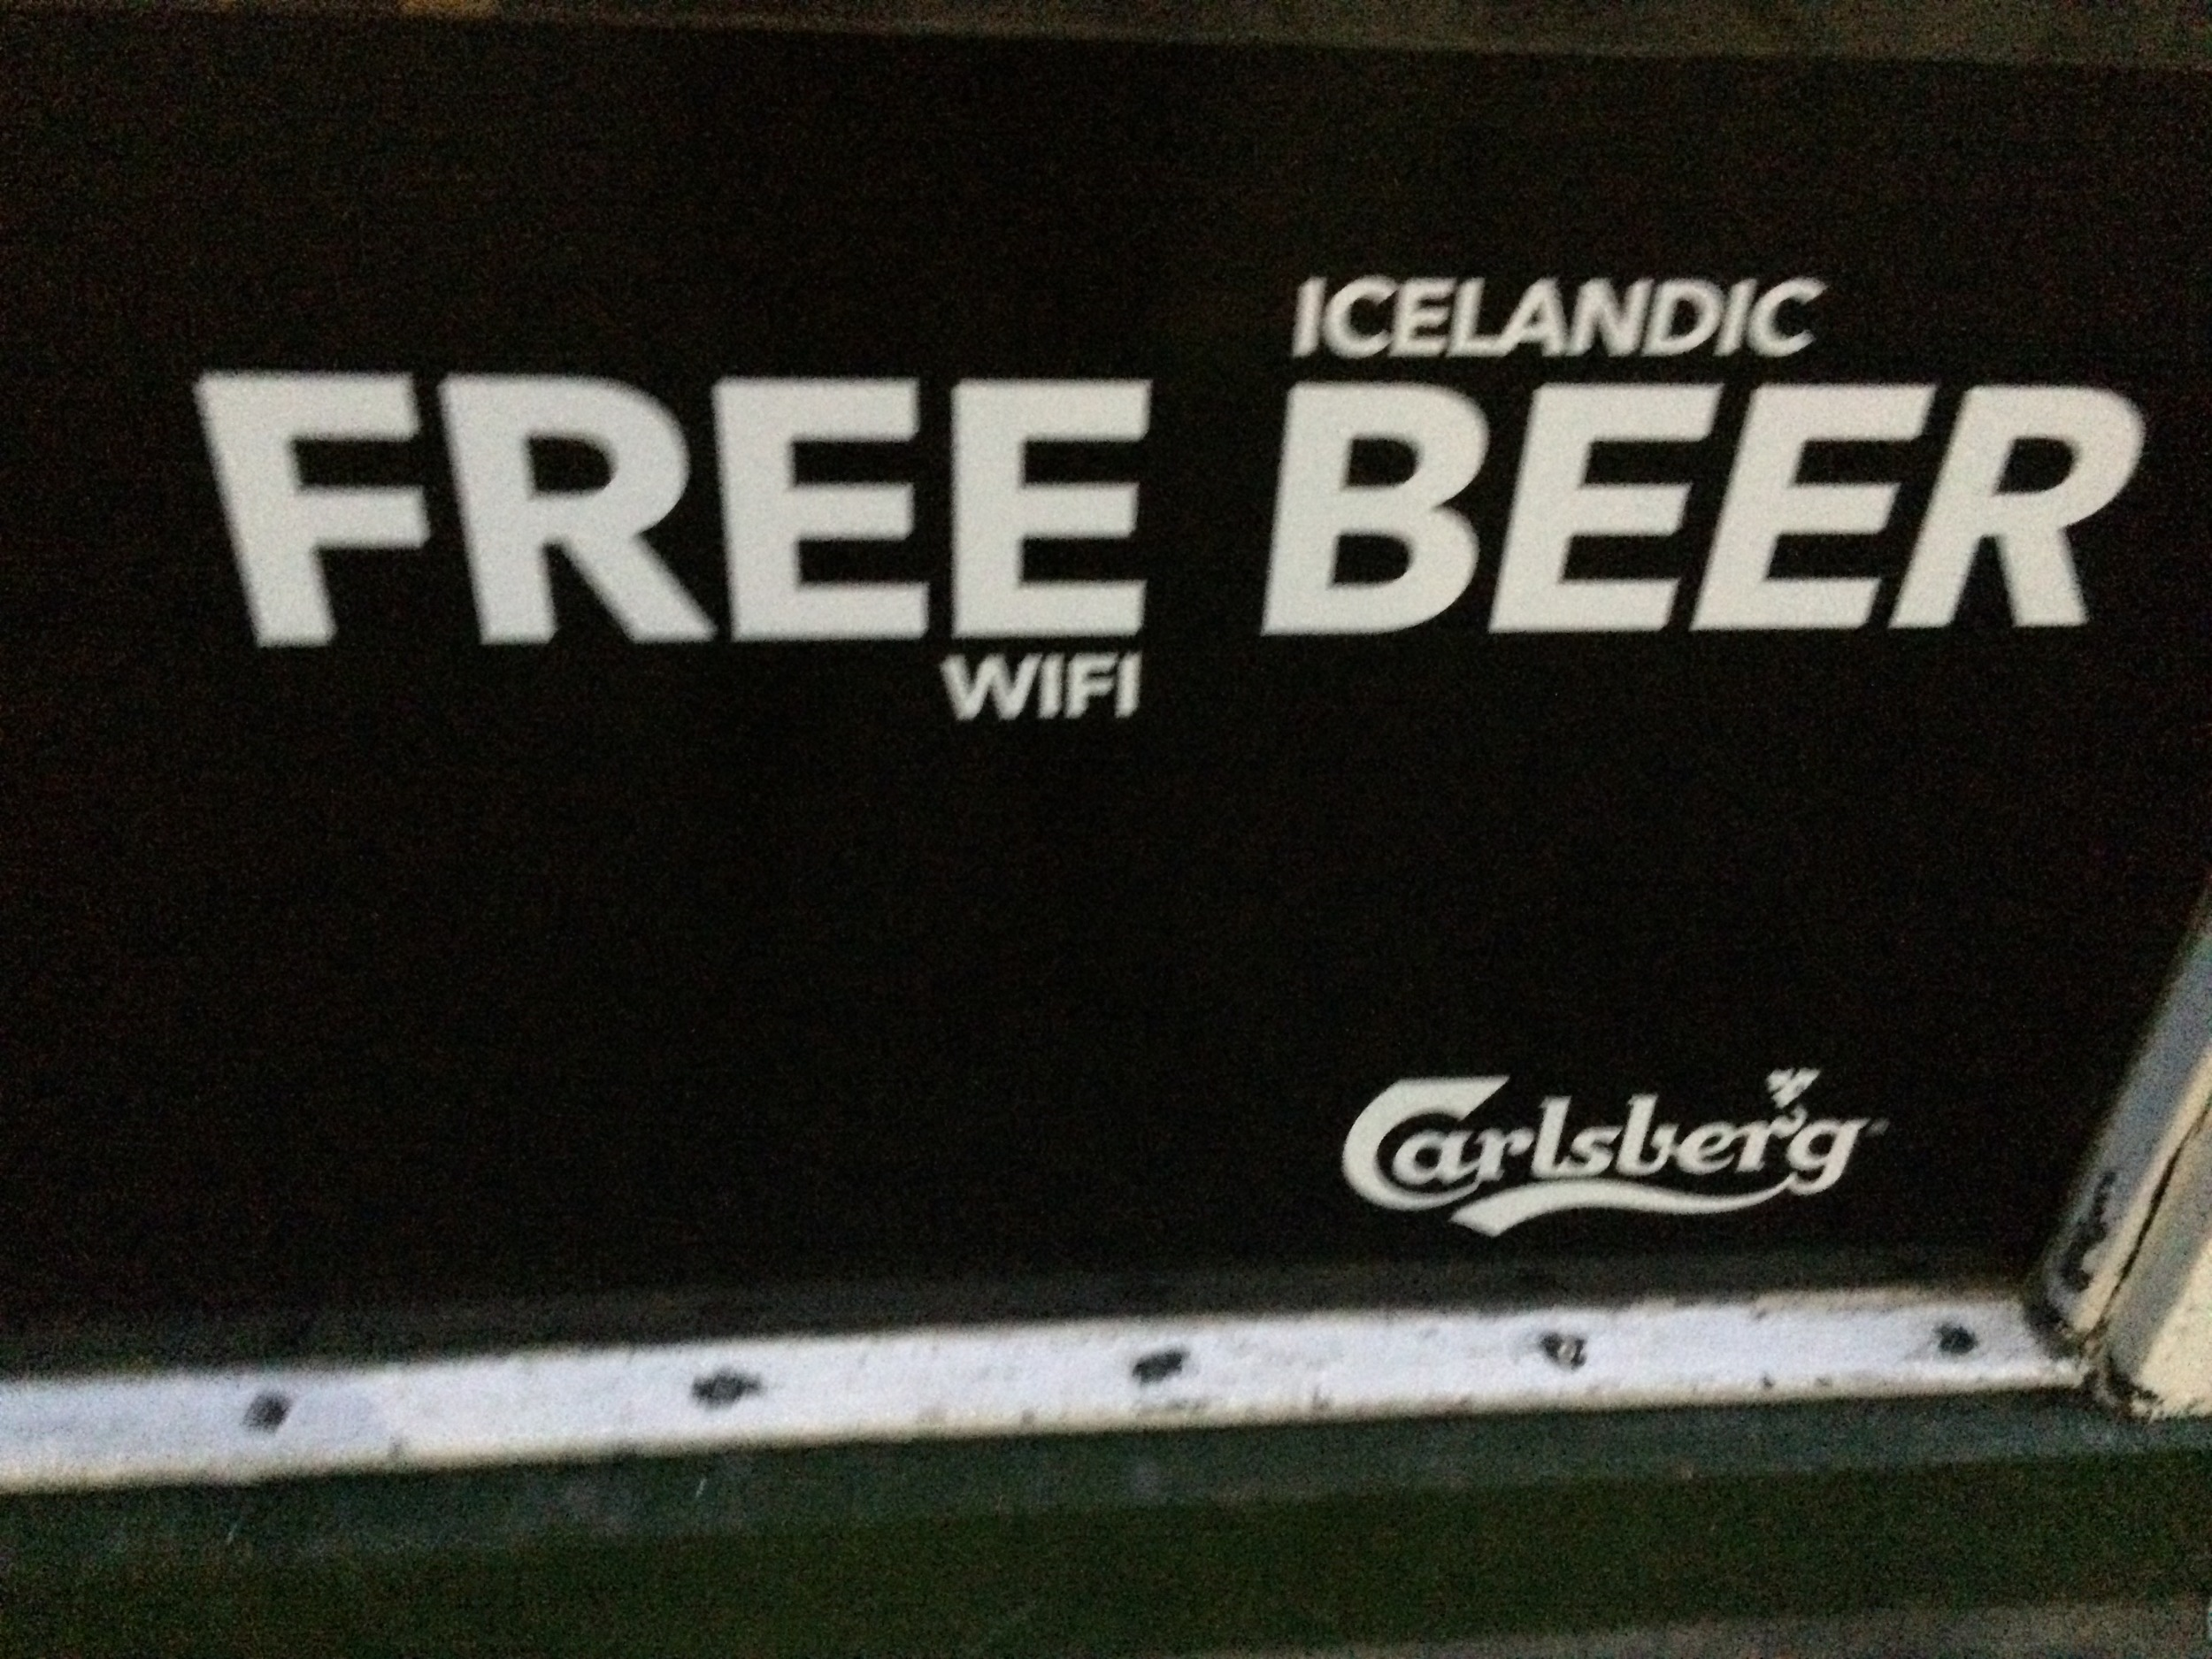 The words FREE BEER gets anyone to stop - but only to find out there is. no. free. beer... tear! Clever, but we walked passed this bar and moved on to the next because the sign pissed us off. The audience (us beer drinkers) deemed it a fail. It seemed super harsh considering how expensive beer is in Iceland!